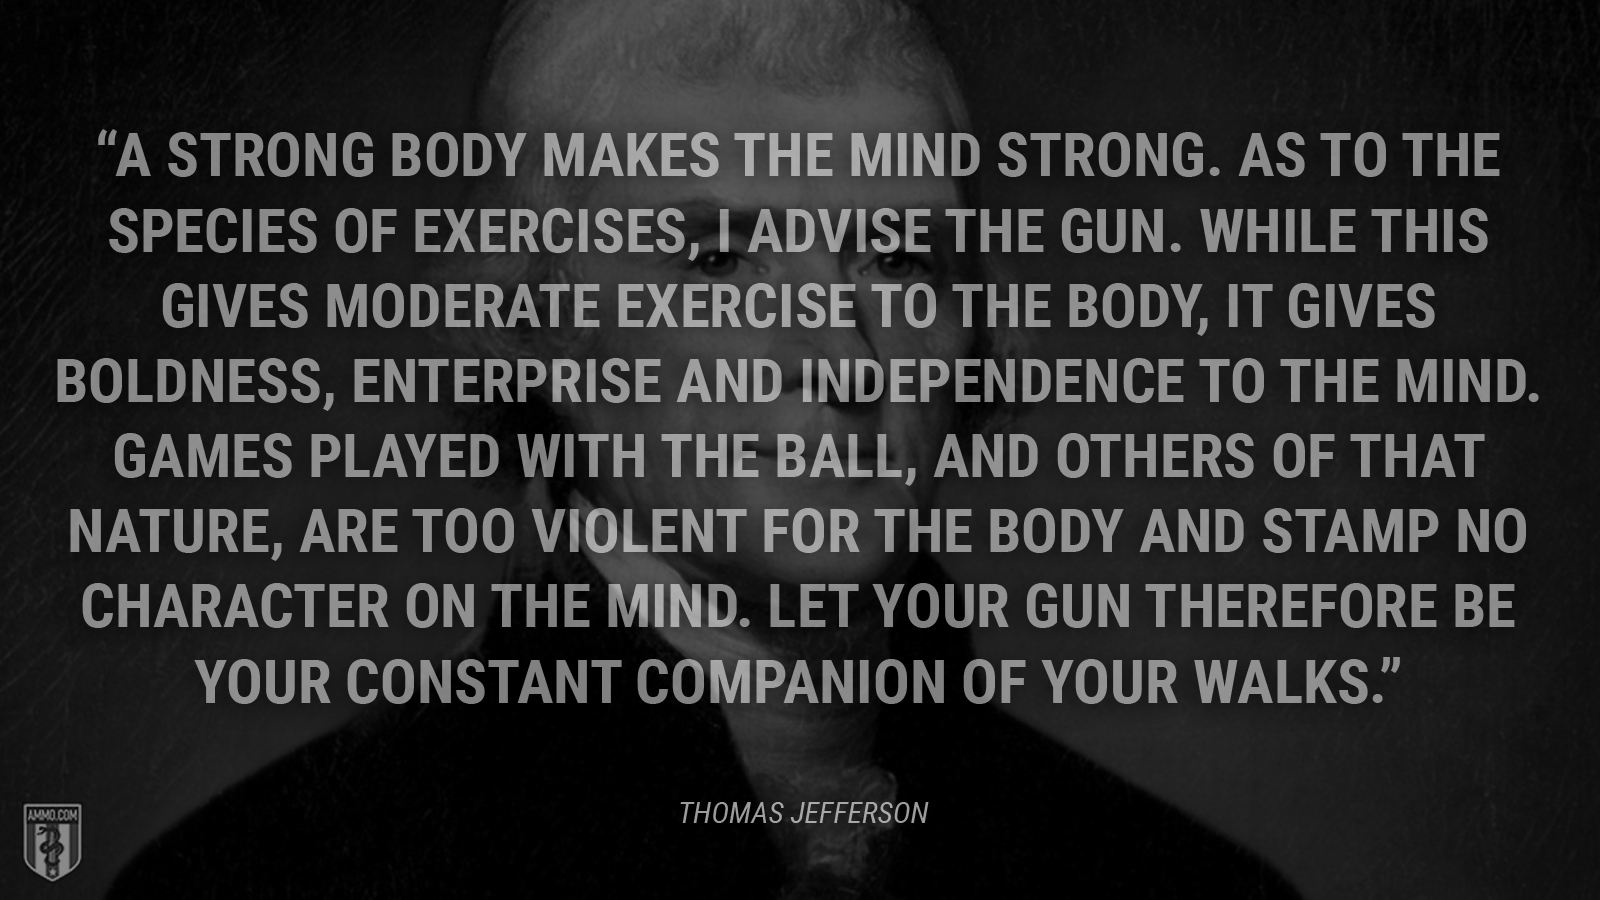 """A strong body makes the mind strong. As to the species of exercises, I advise the gun. While this gives moderate exercise to the body, it gives boldness, enterprise and independence to the mind. Games played with the ball, and others of that nature, are too violent for the body and stamp no character on the mind. Let your gun therefore be your constant companion of your walks."" - Thomas Jefferson"